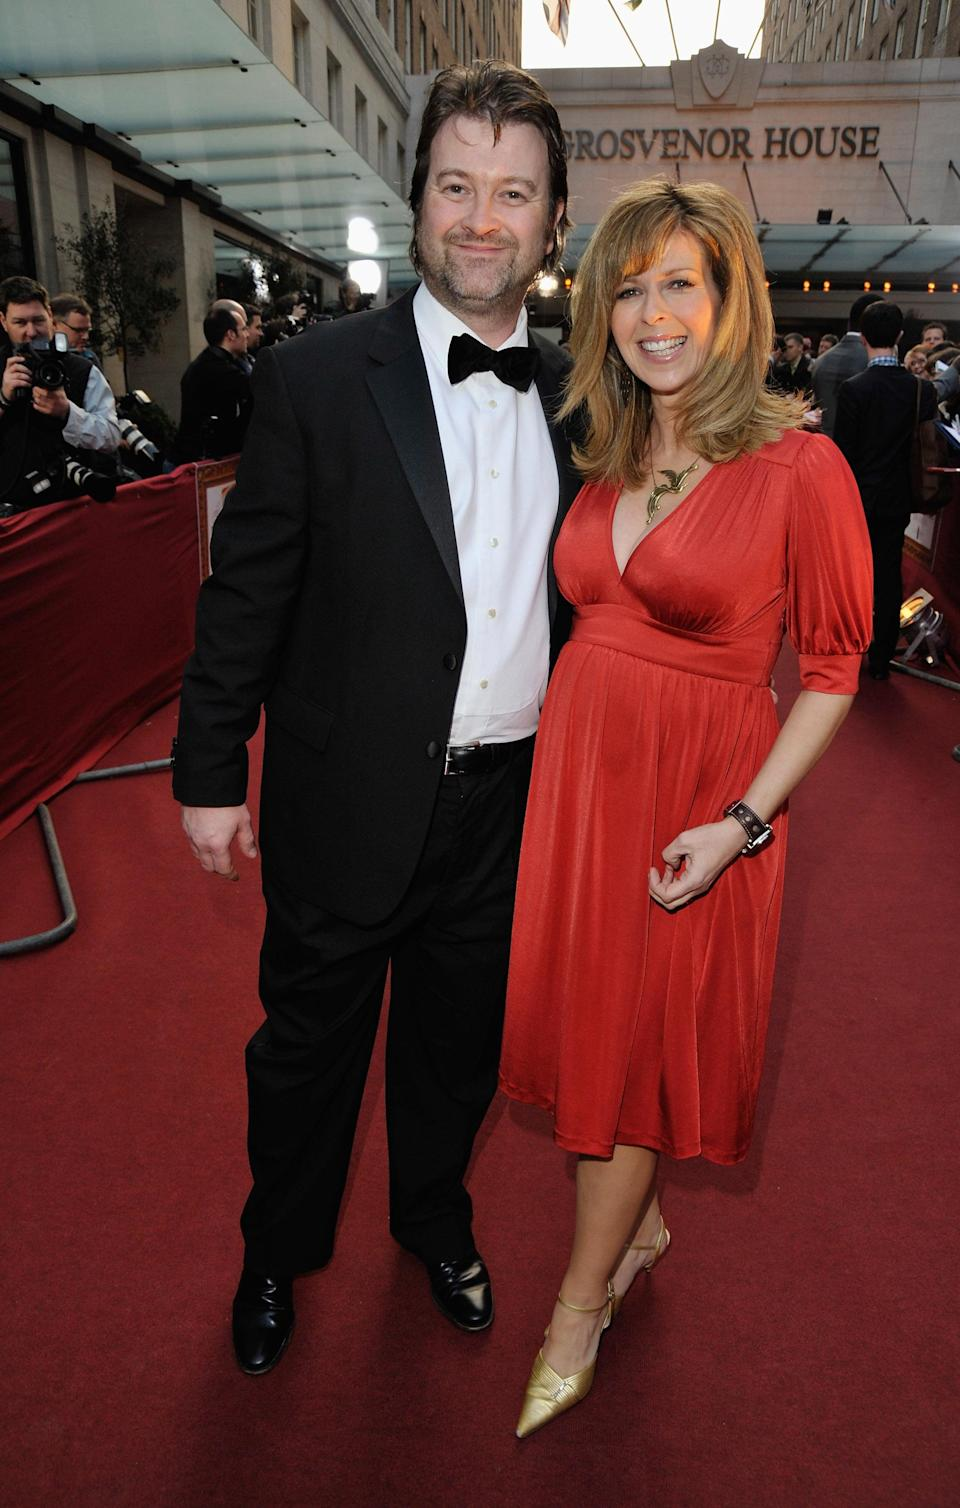 TV Presenter Kate Garraway and husband Derek Draper arrives at the Galaxy British Book Awards at Grosvenor House on April 3, 2009 in London, England. (Photo by Jon Furniss/WireImage)